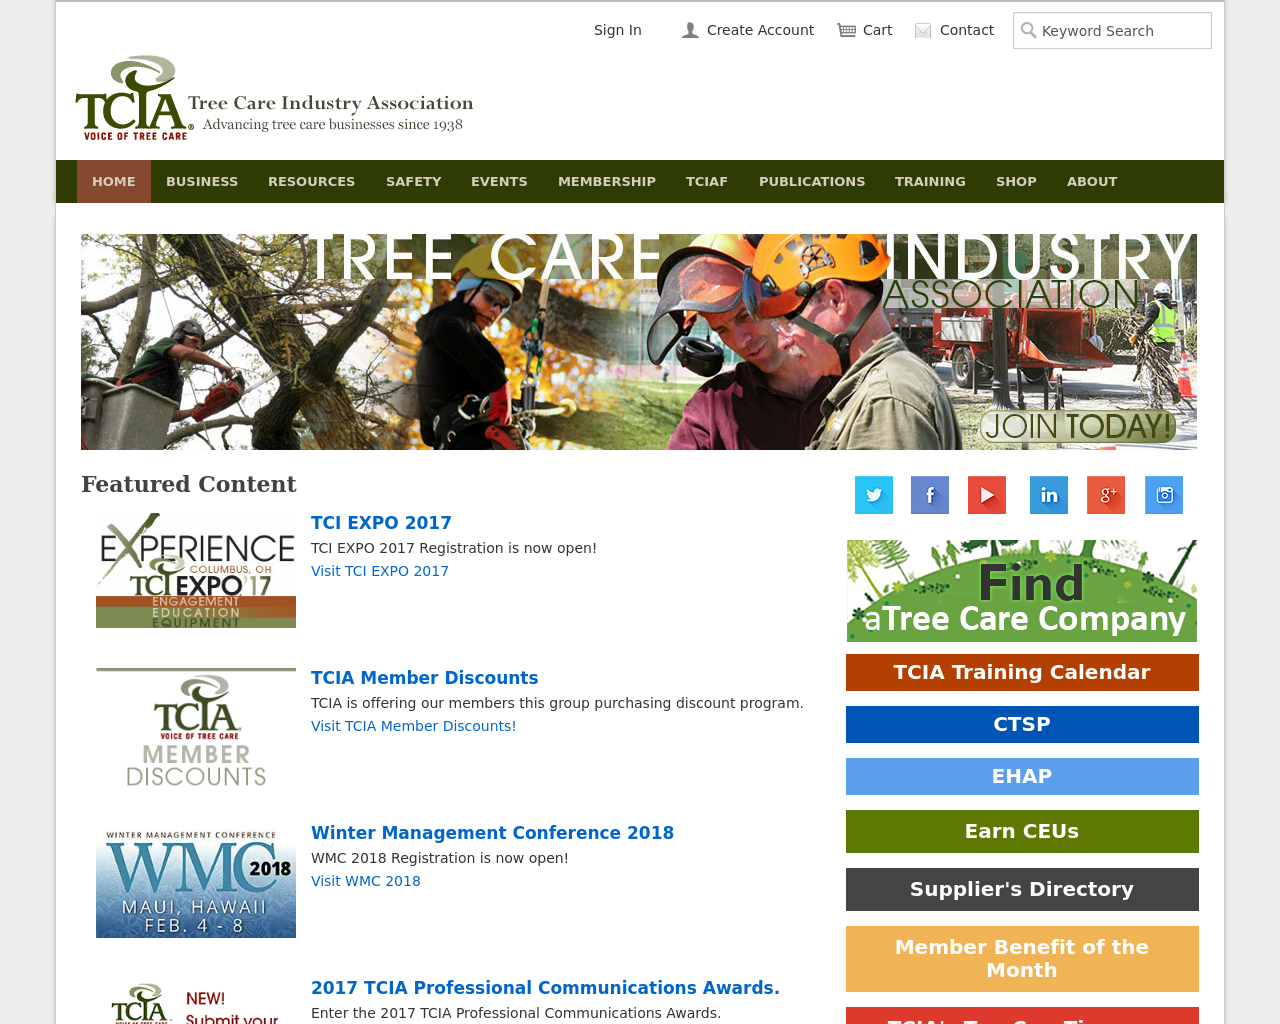 Tree-Care-Industry-Association-Advertising-Reviews-Pricing